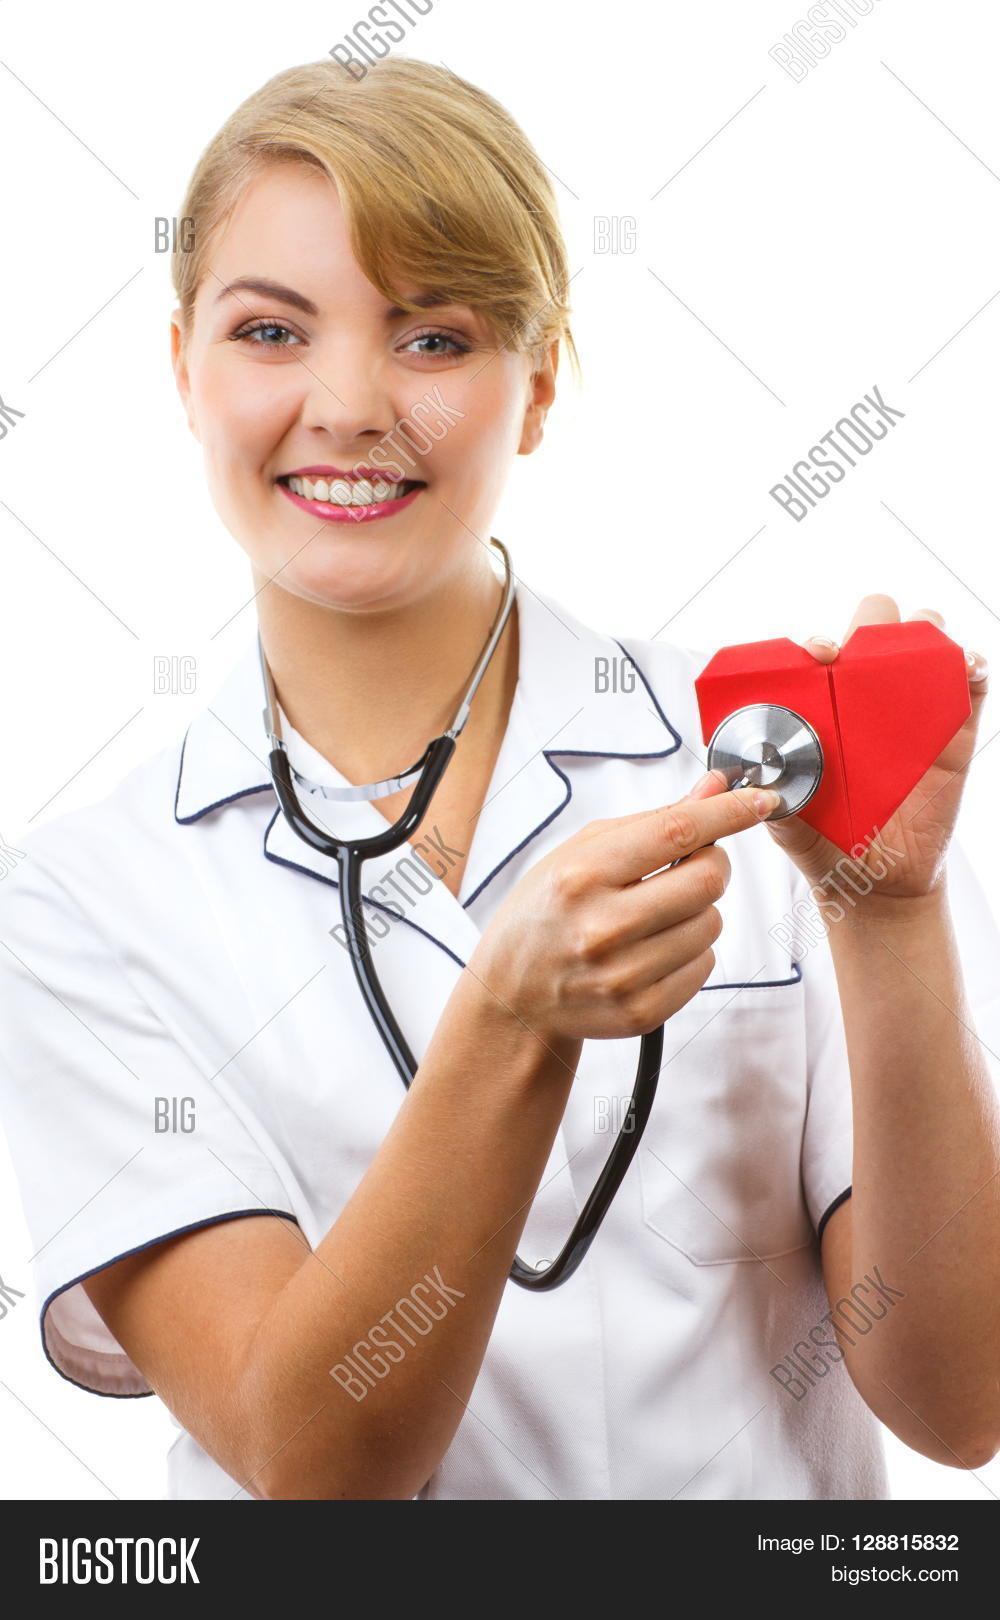 White apron health - Smiling Woman Doctor Cardiologist In White Apron With Stethoscope Examining Red Heart Of Paper Healthcare And